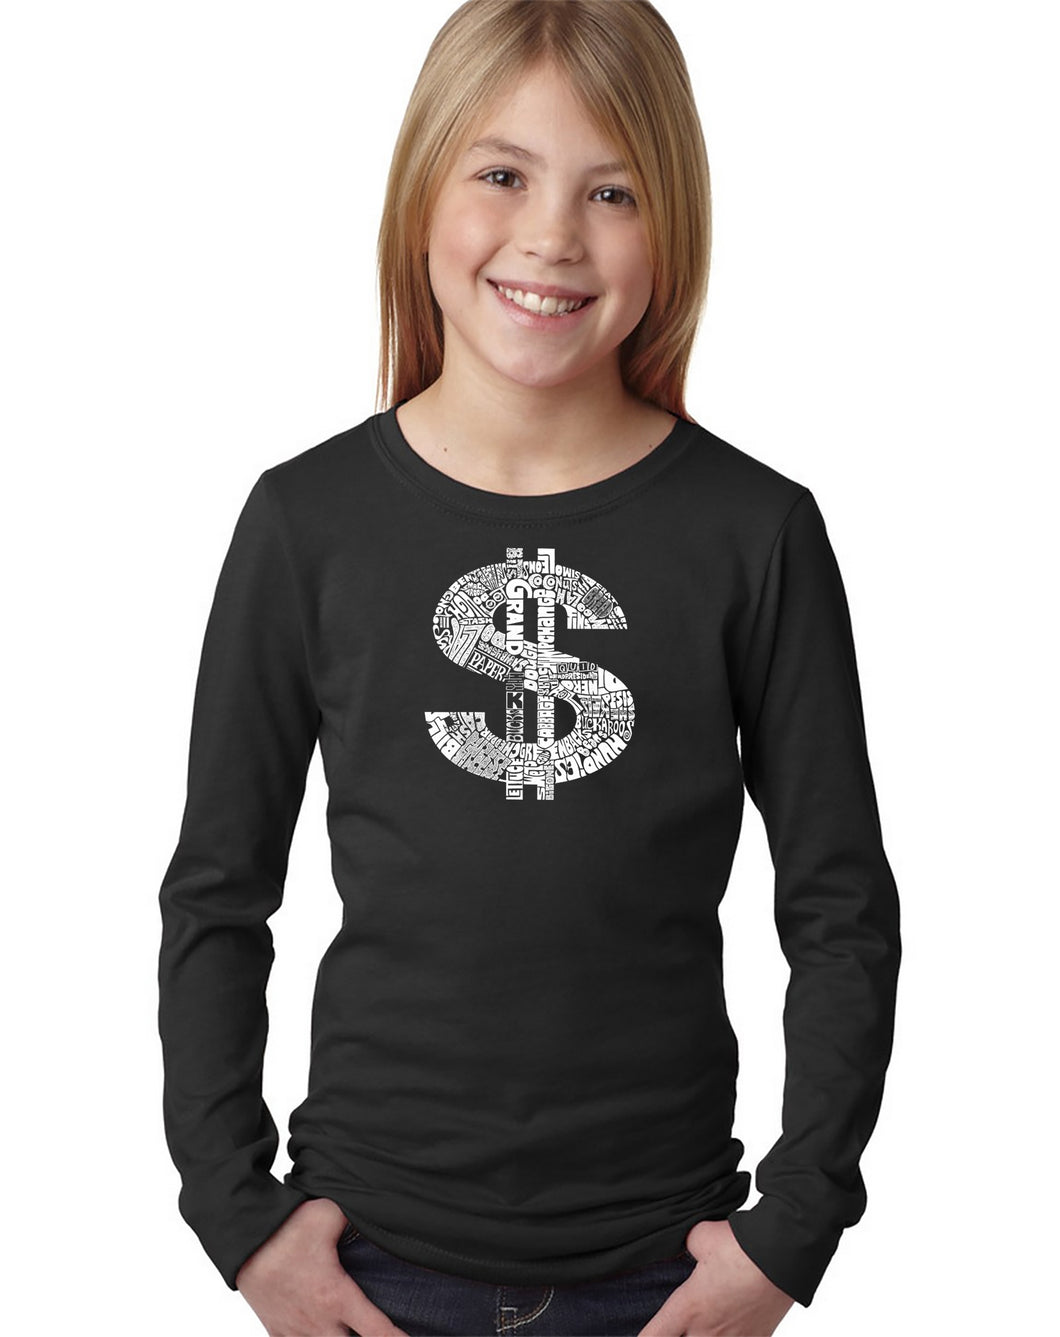 LA Pop Art Girl's Word Art Long Sleeve - Dollar Sign